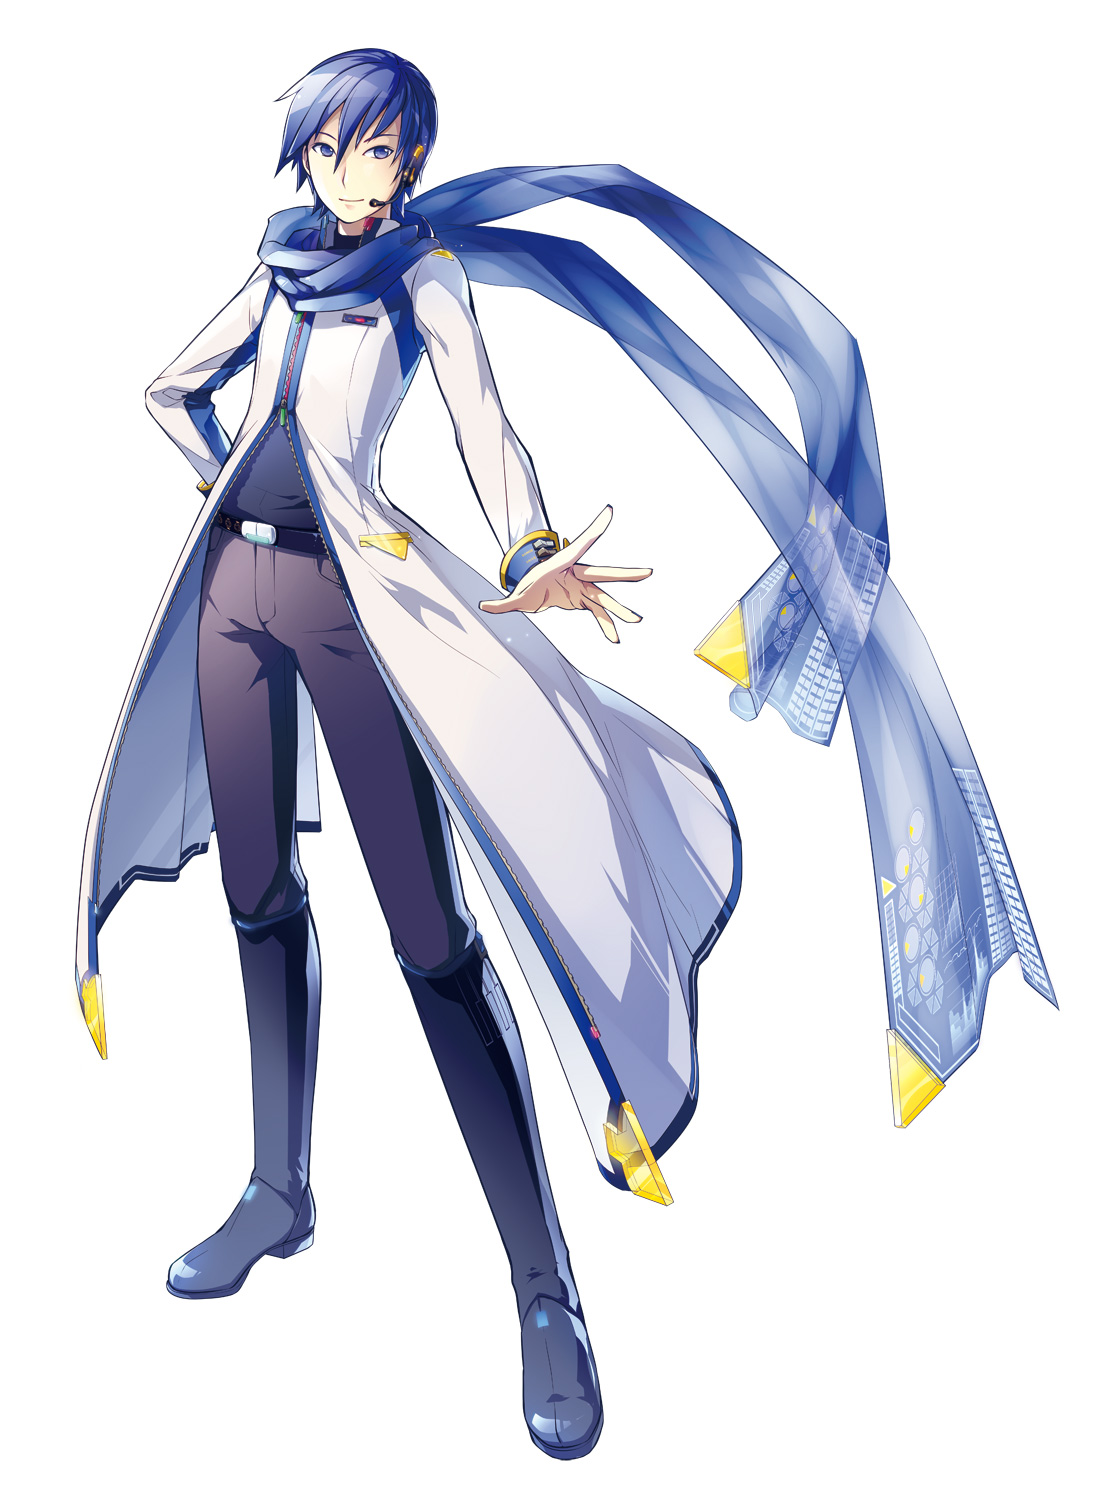 KAITO – Vocaloid Wiki – Vocaloid, Charaktere, Songs ... Vocaloid Kaito Songs